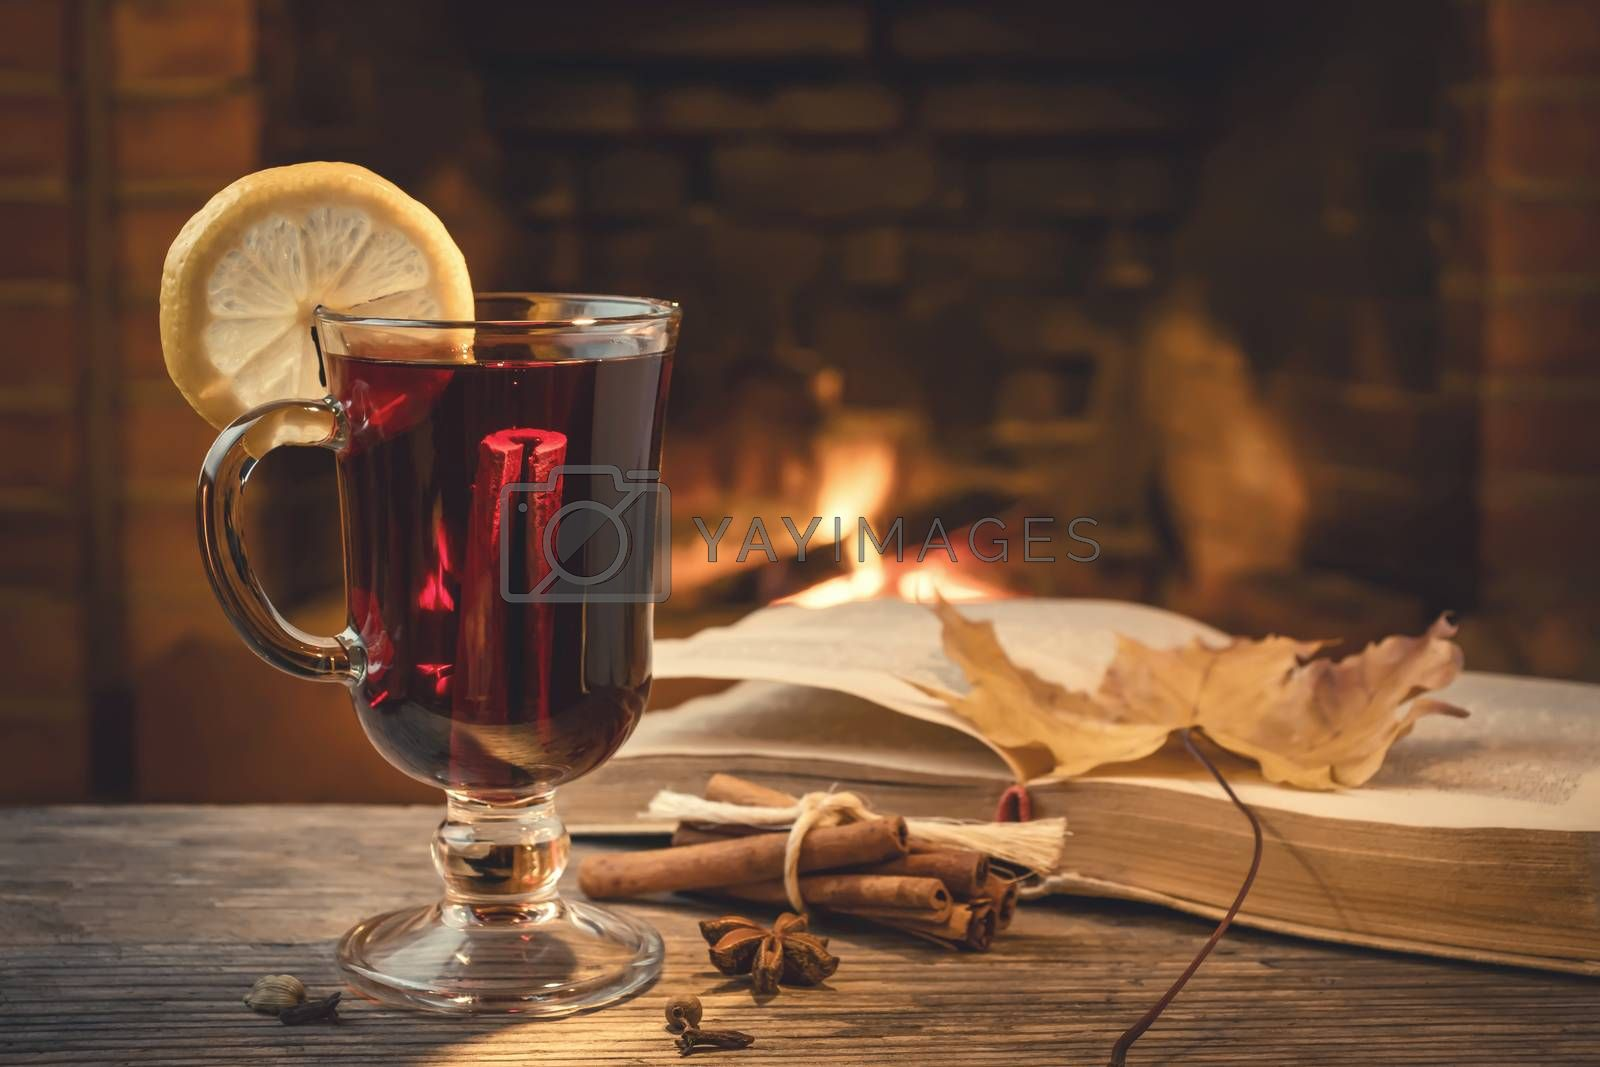 Glass of mulled wine, spices, a book on a table in a cozy room with a burning fireplace.